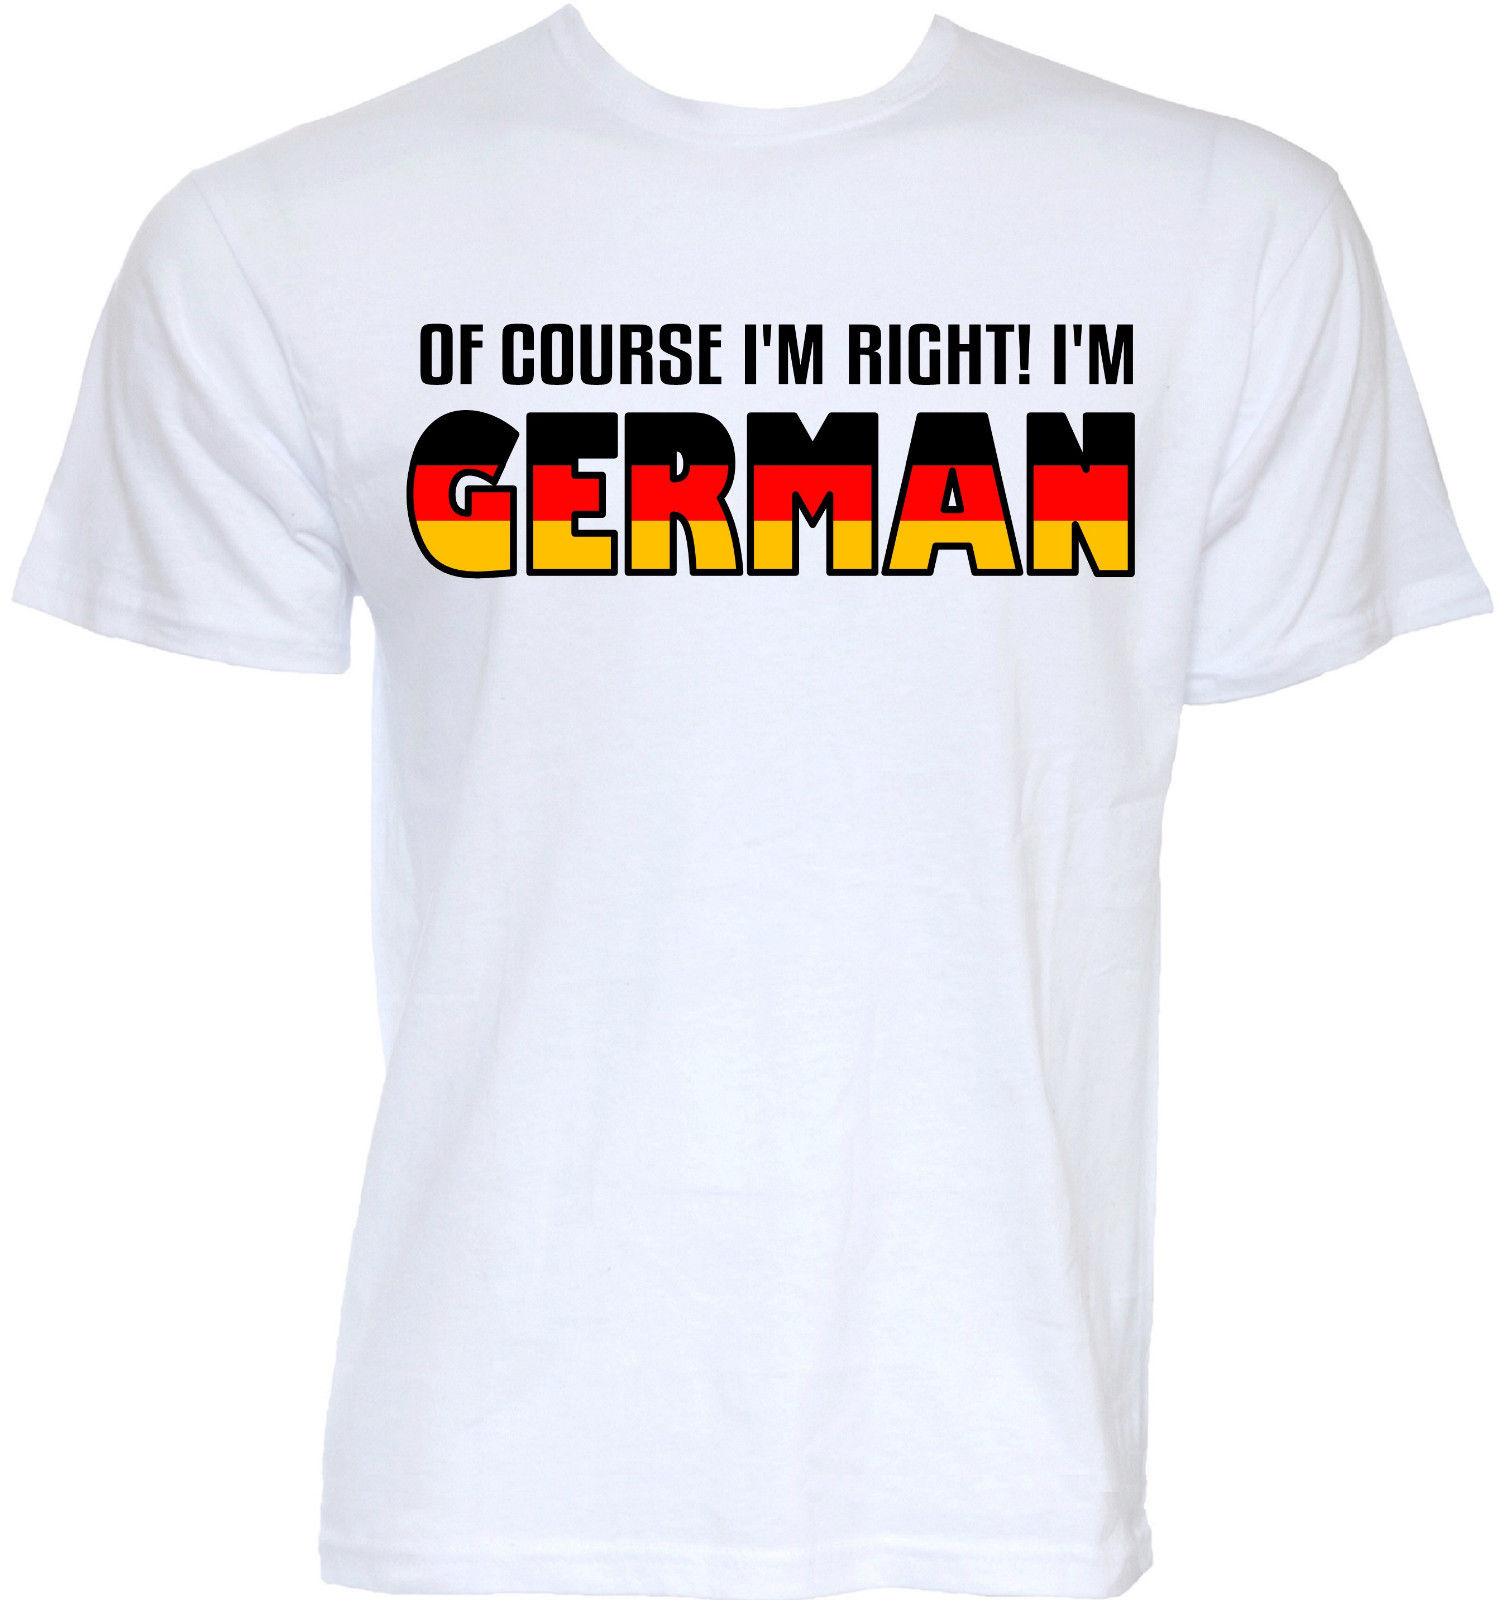 MENS FUNNY COOL NOVELTY GERMAN GERMANY FLAG SLOGAN JOKE T-SHIRTS RUDE FUN GIFTS High Quality Fashion MenS T Shirts Personality